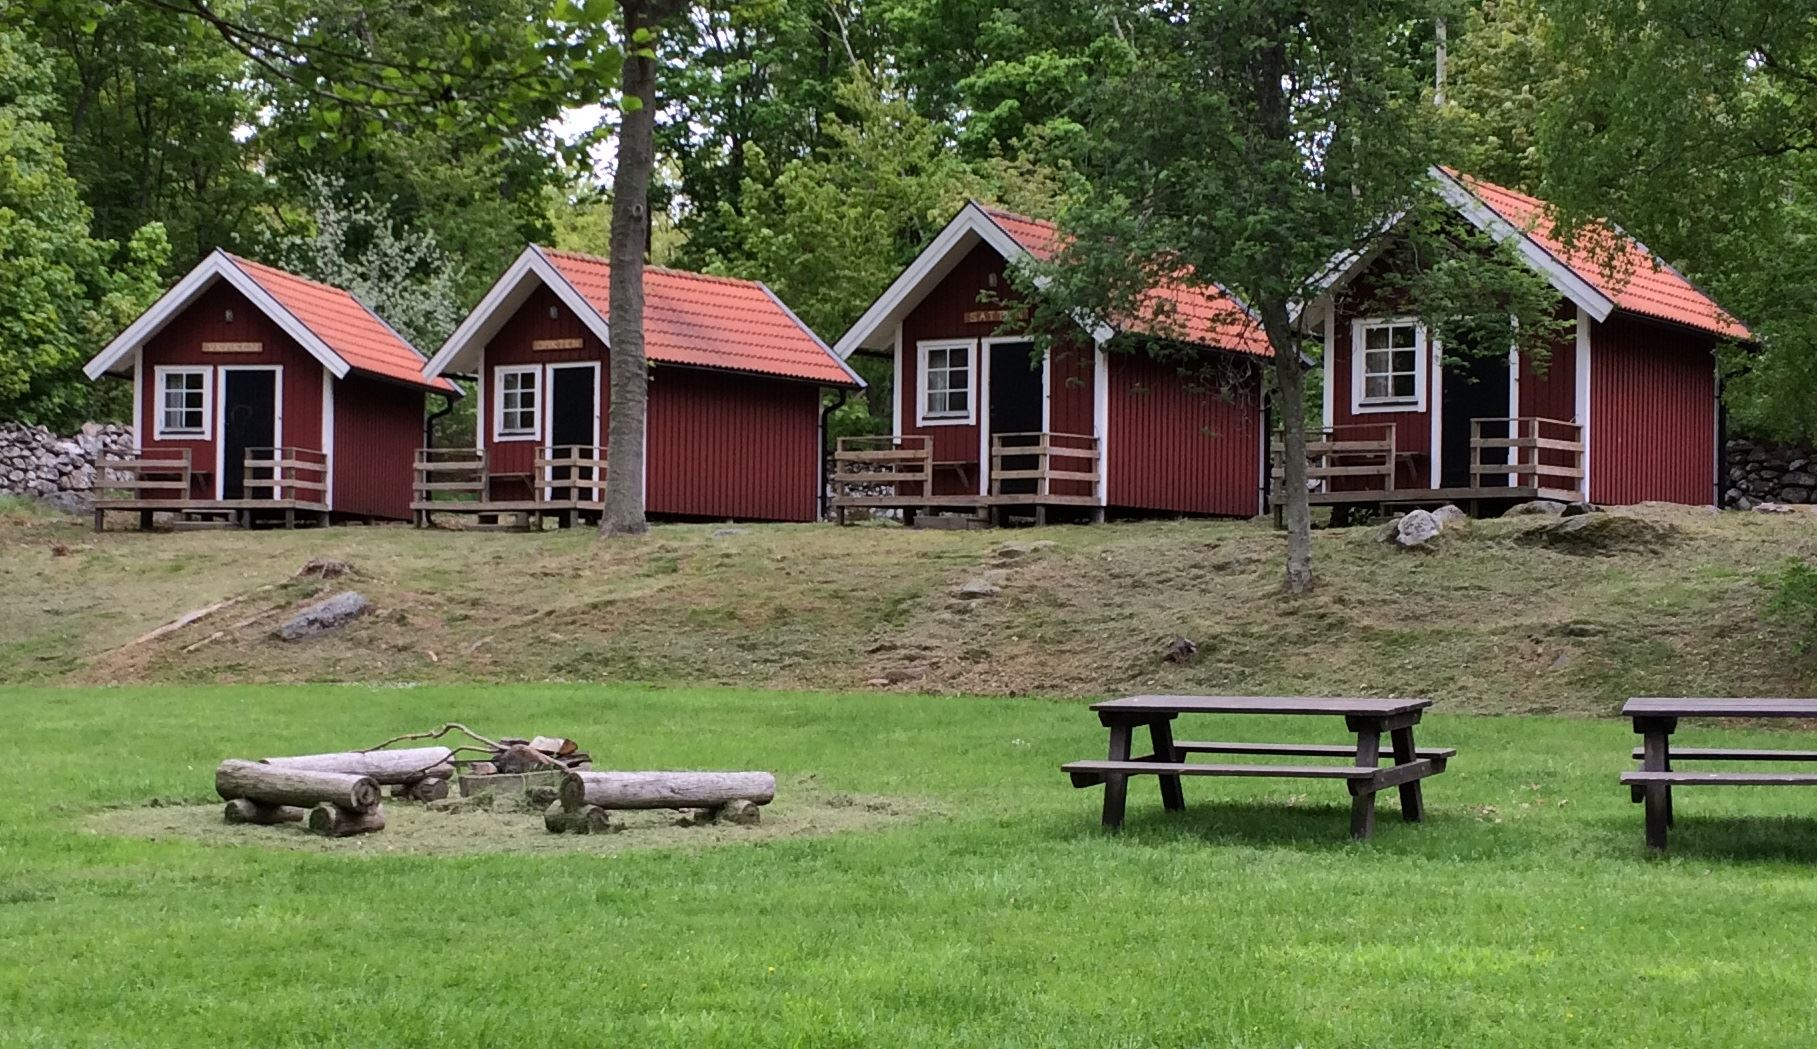 Stenbräckagården Hägnan's camping cottages